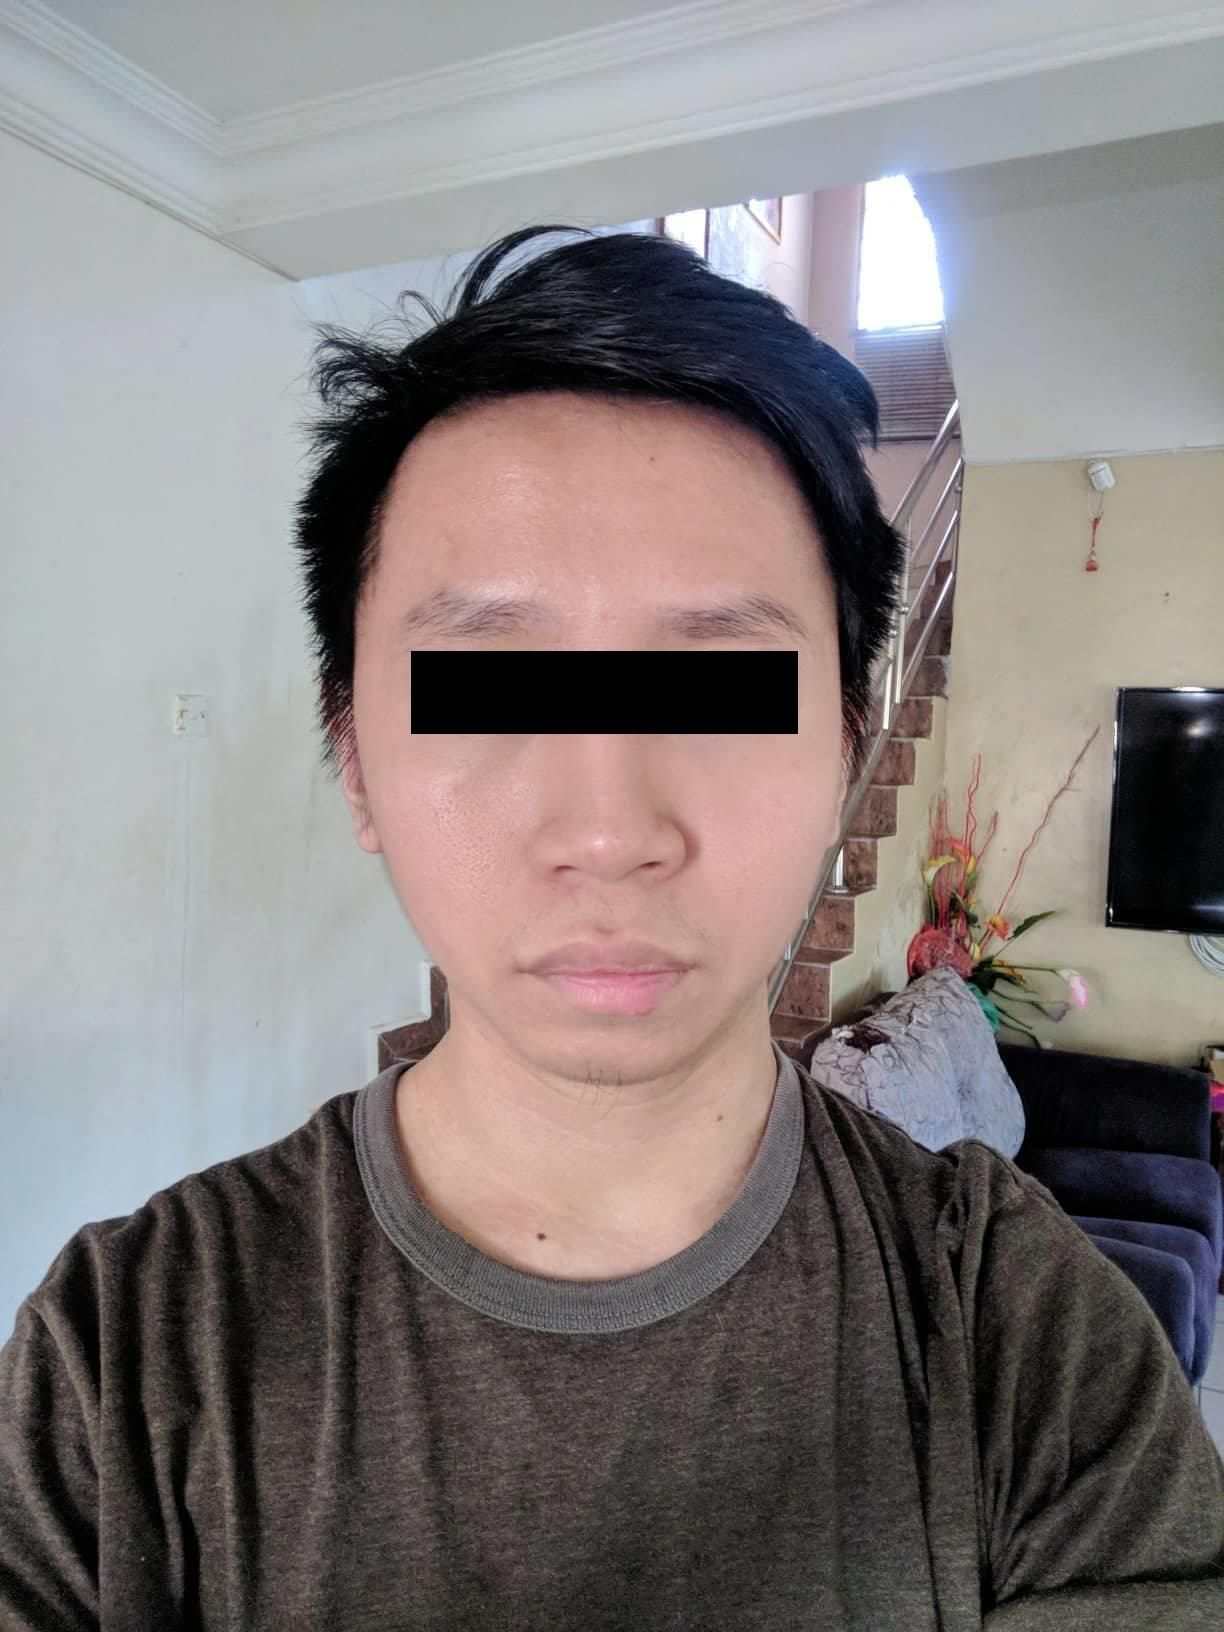 Best Haircut For My Face Shapefacial Features Httpift